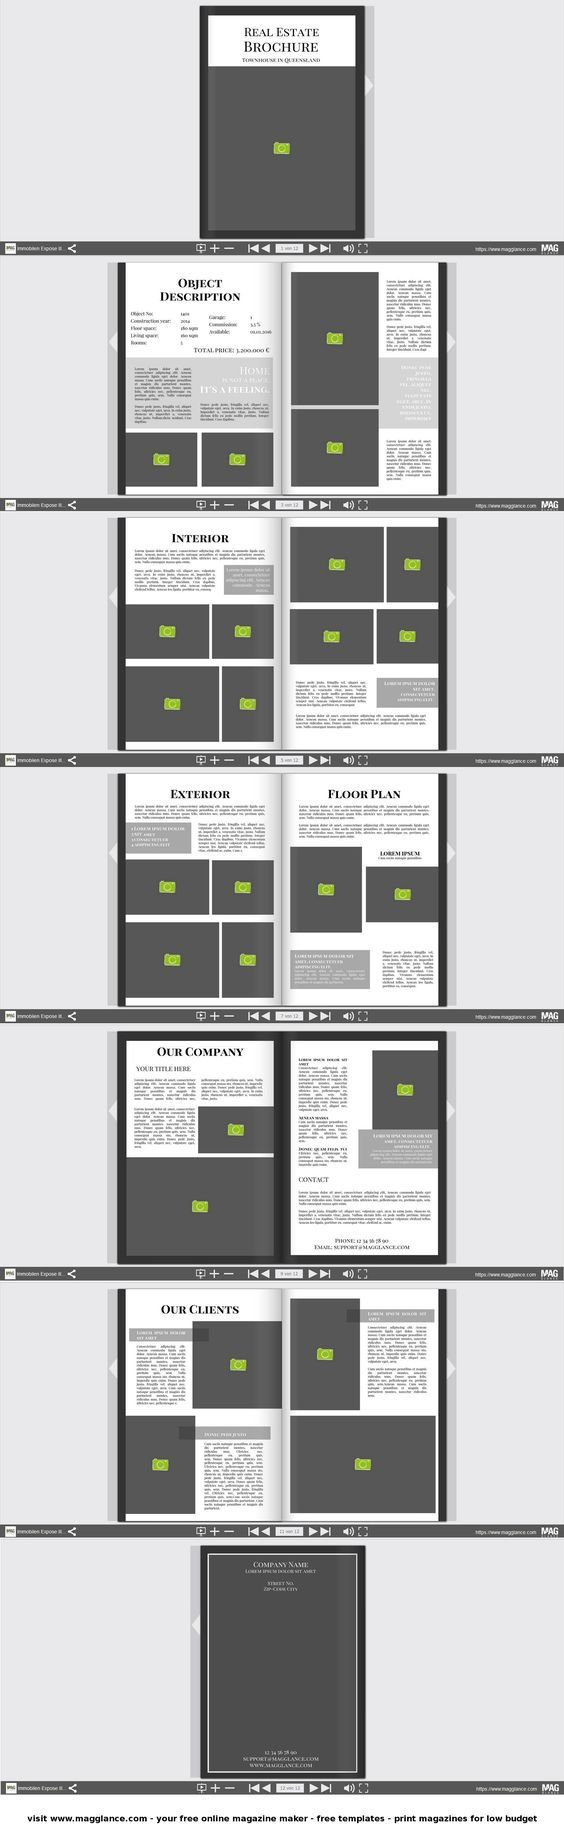 10 best Broszura - szablony images on Pinterest | Brochure design ...